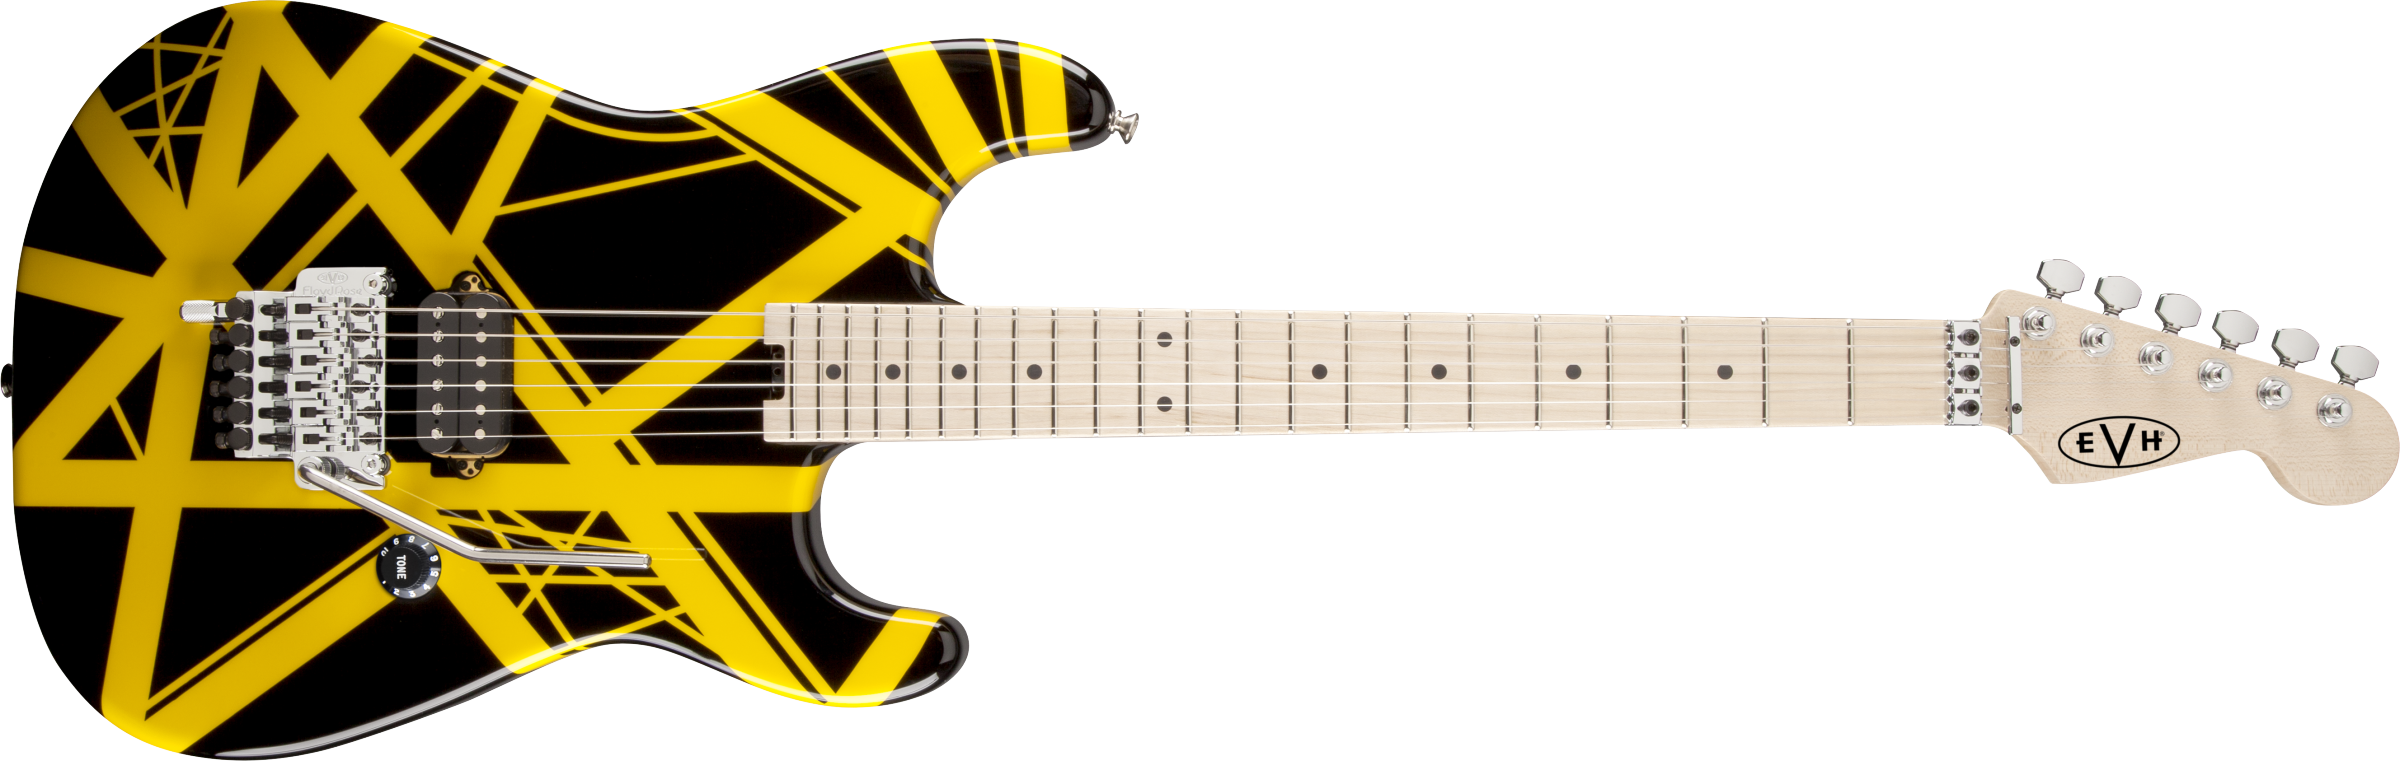 EVH® Striped Series Black with Yellow Stripes